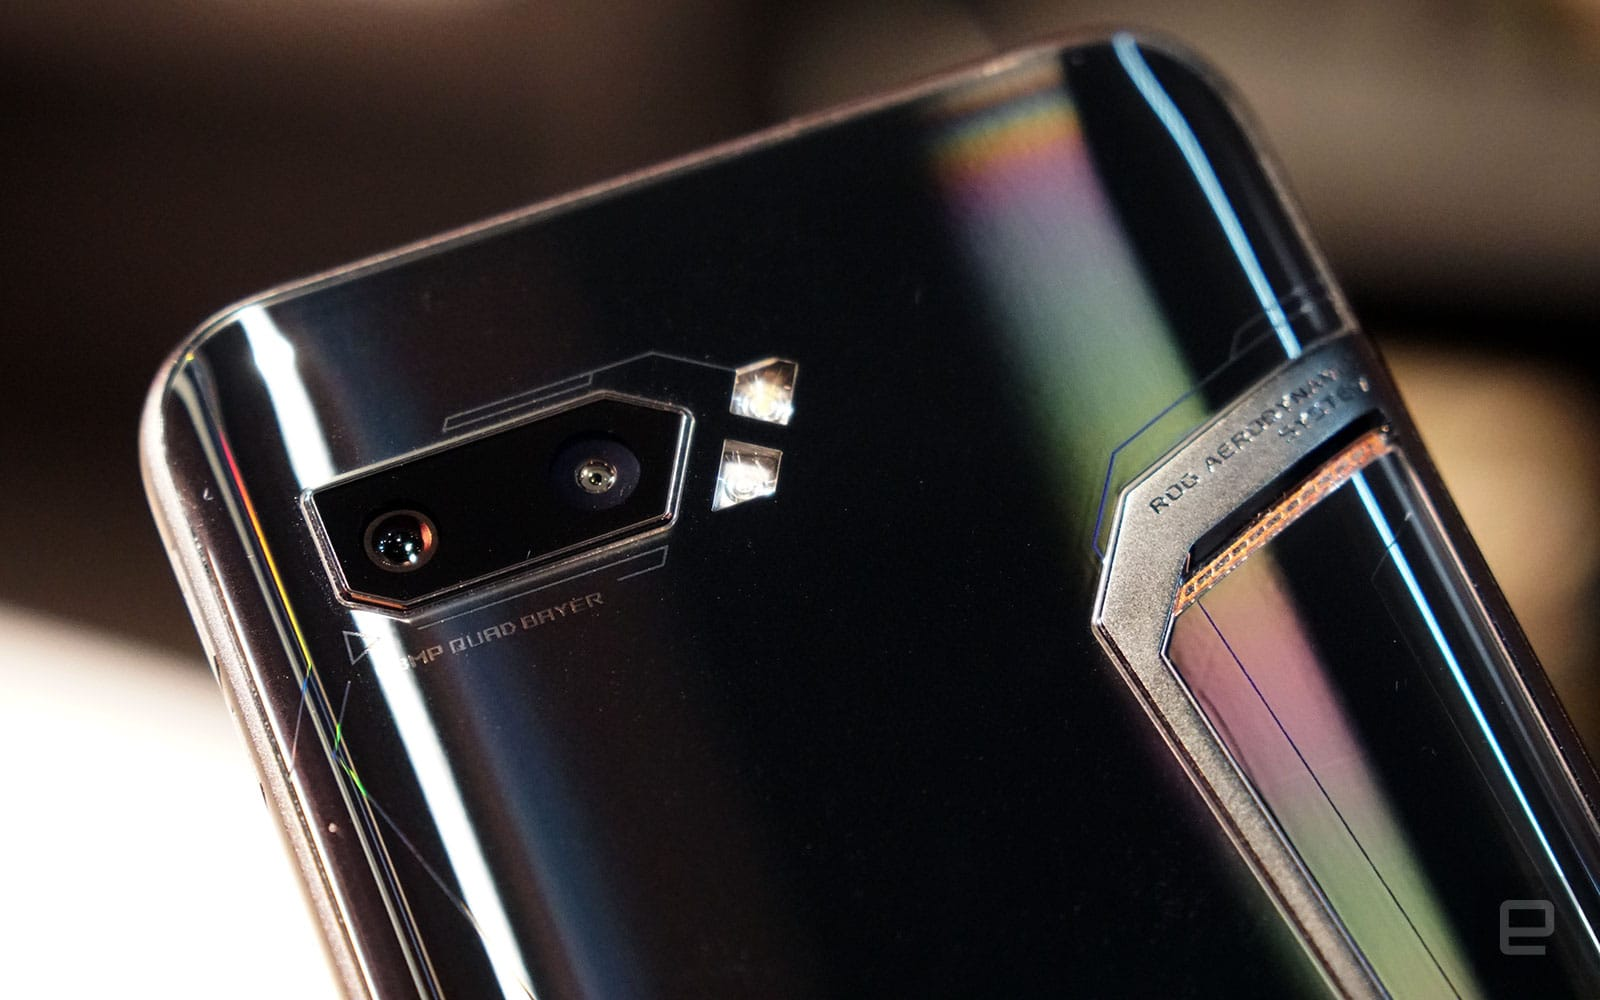 Image result for asus rog phone 2 camera